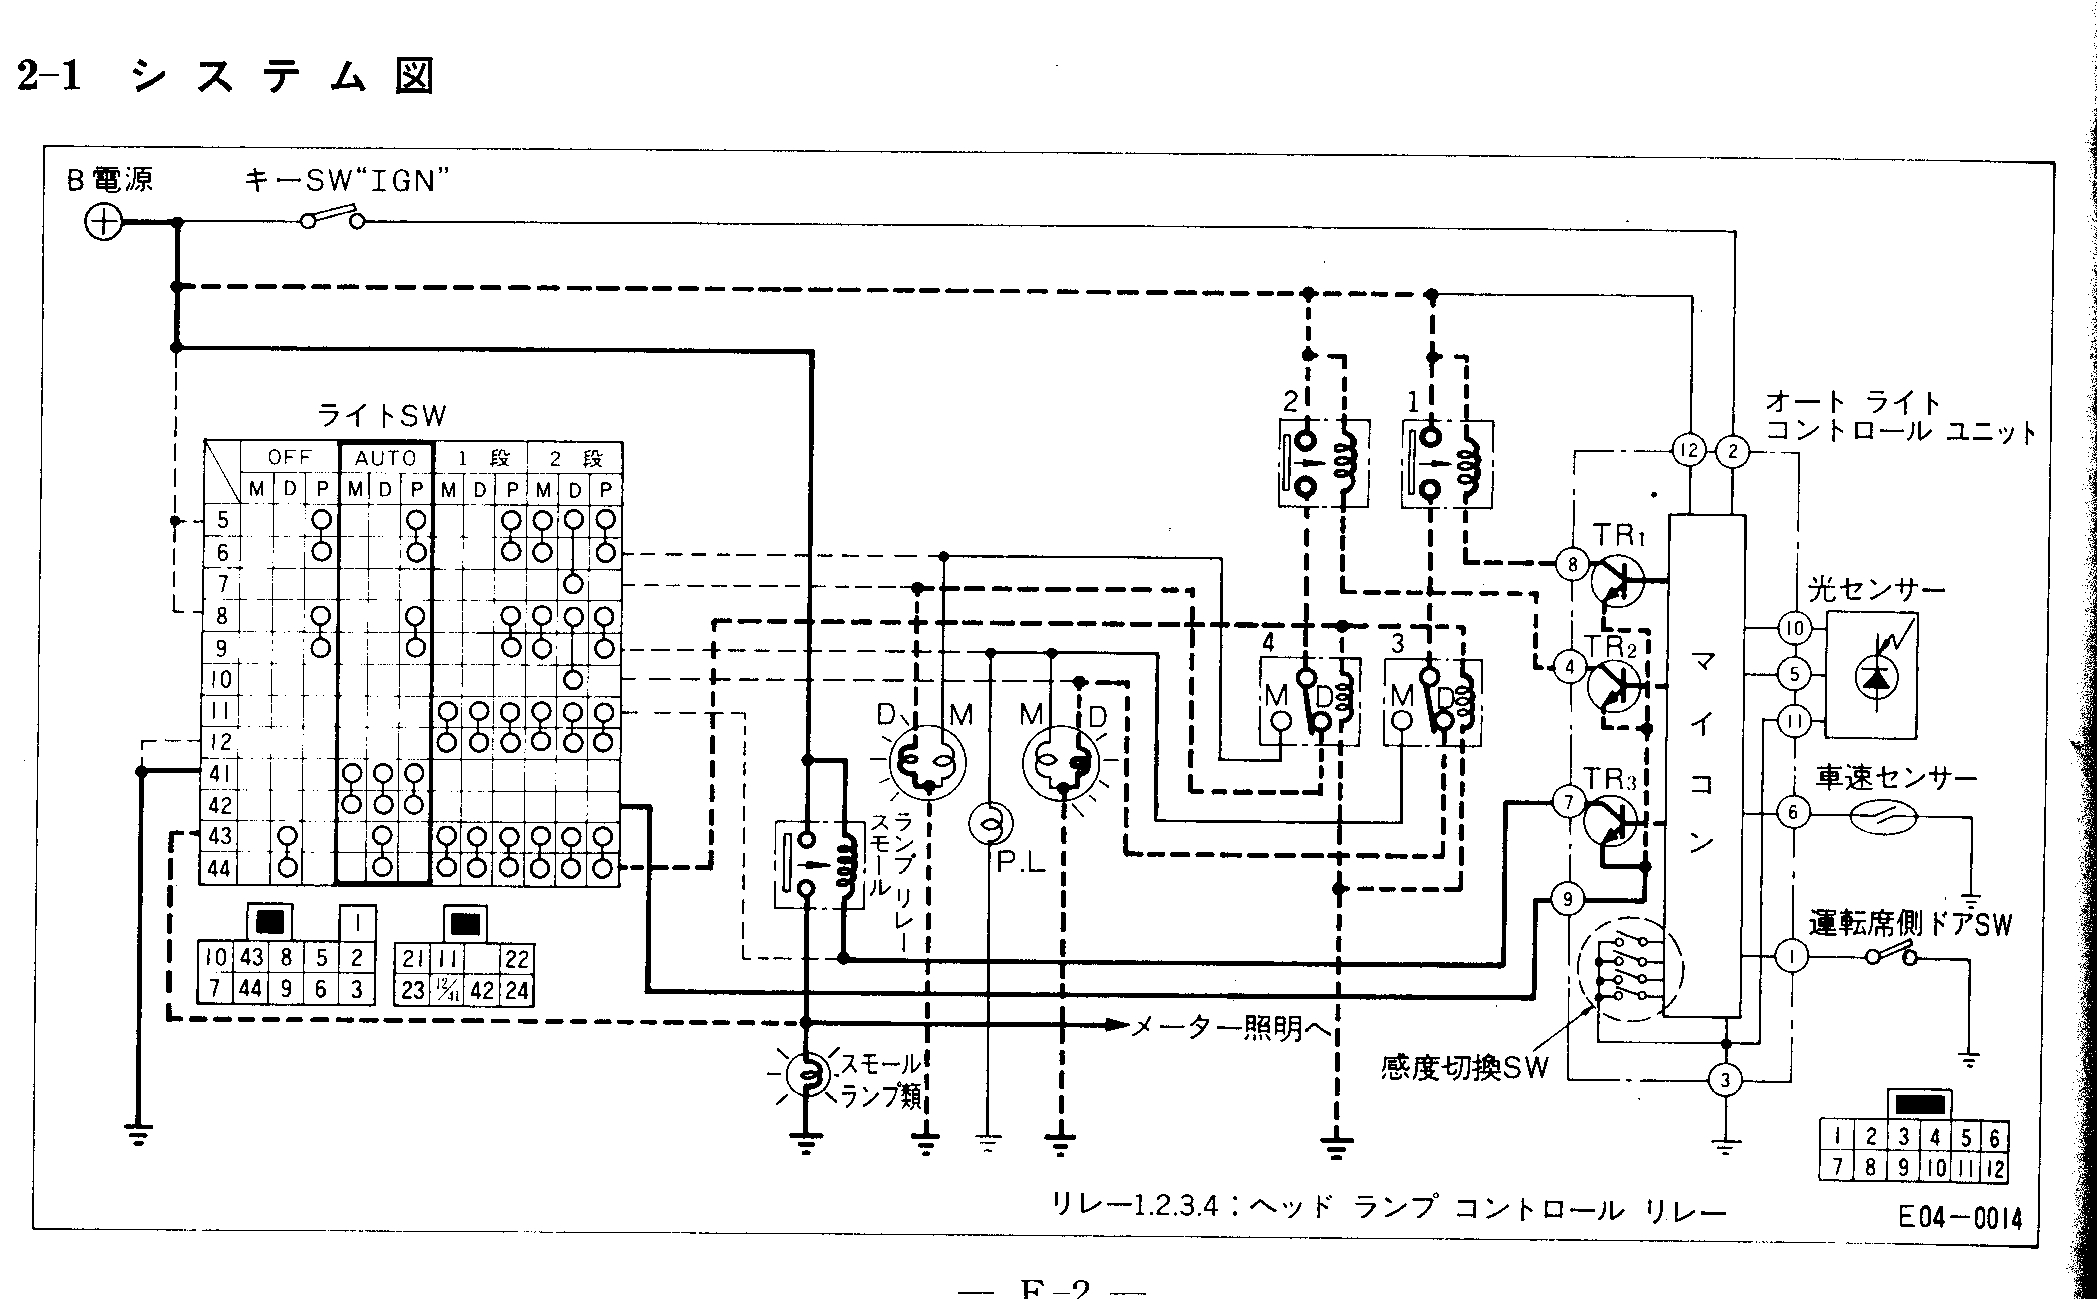 1993 Nissan 300zx Turbo Engine Wiring Diagram. Nissan